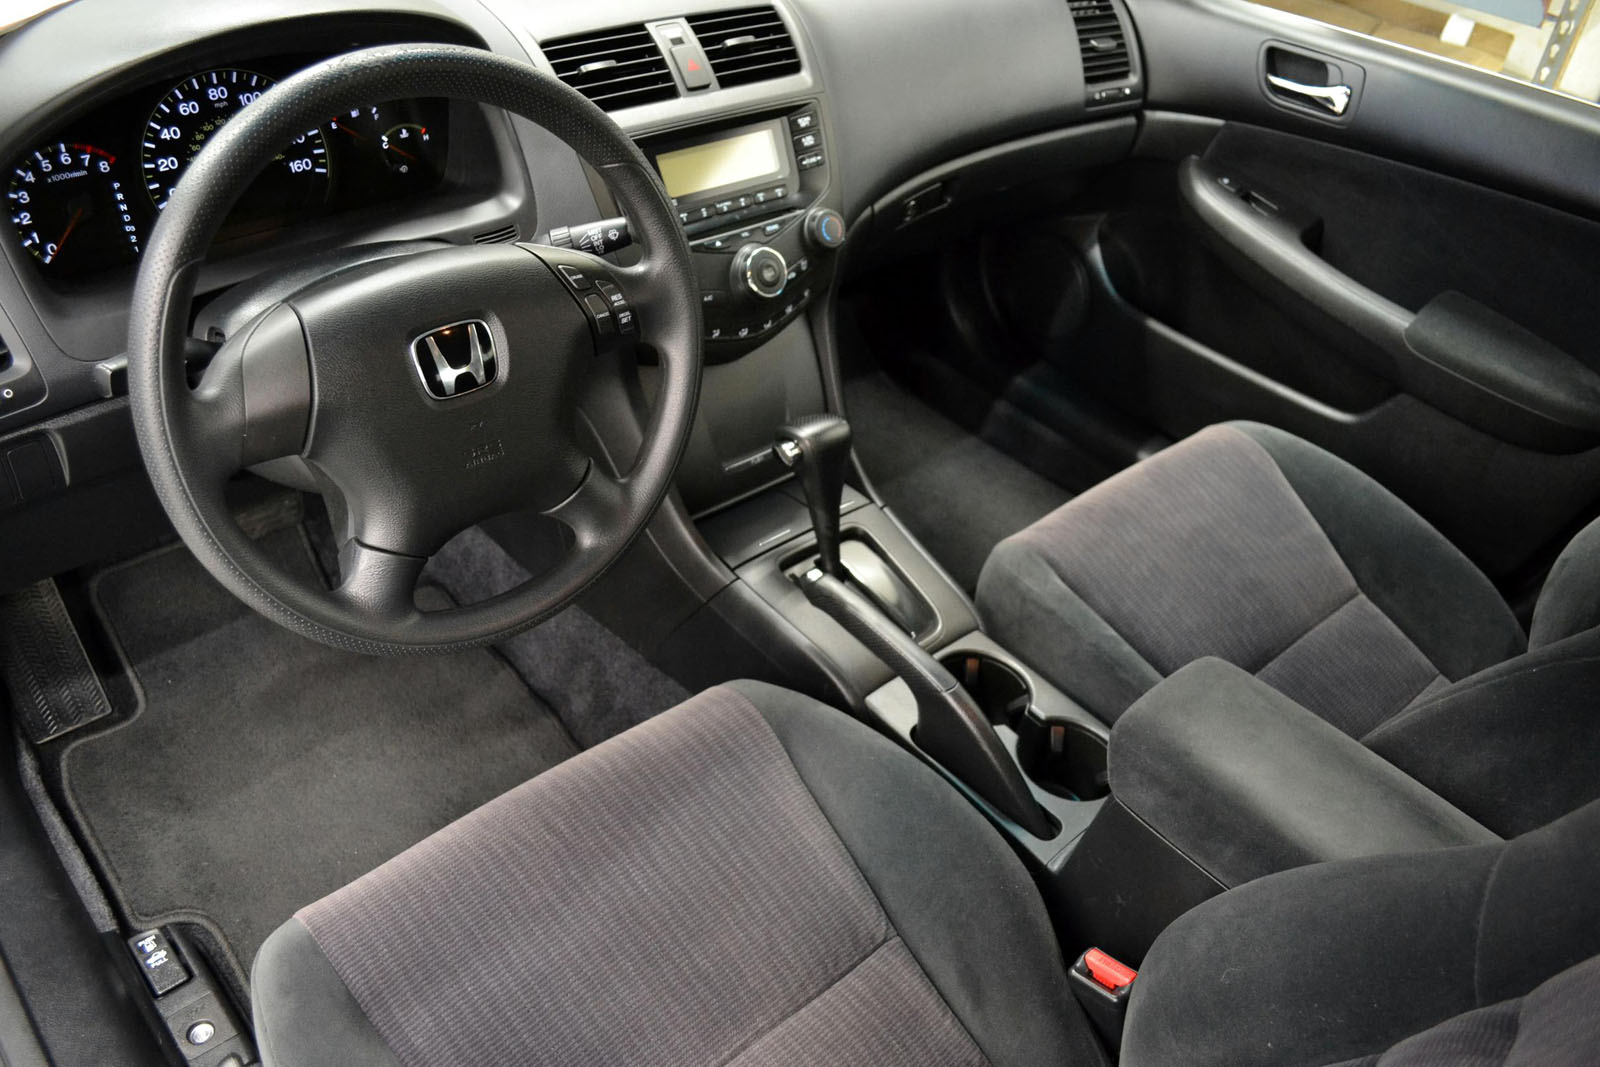 New Honda Accord >> 2005 Honda Accord LX